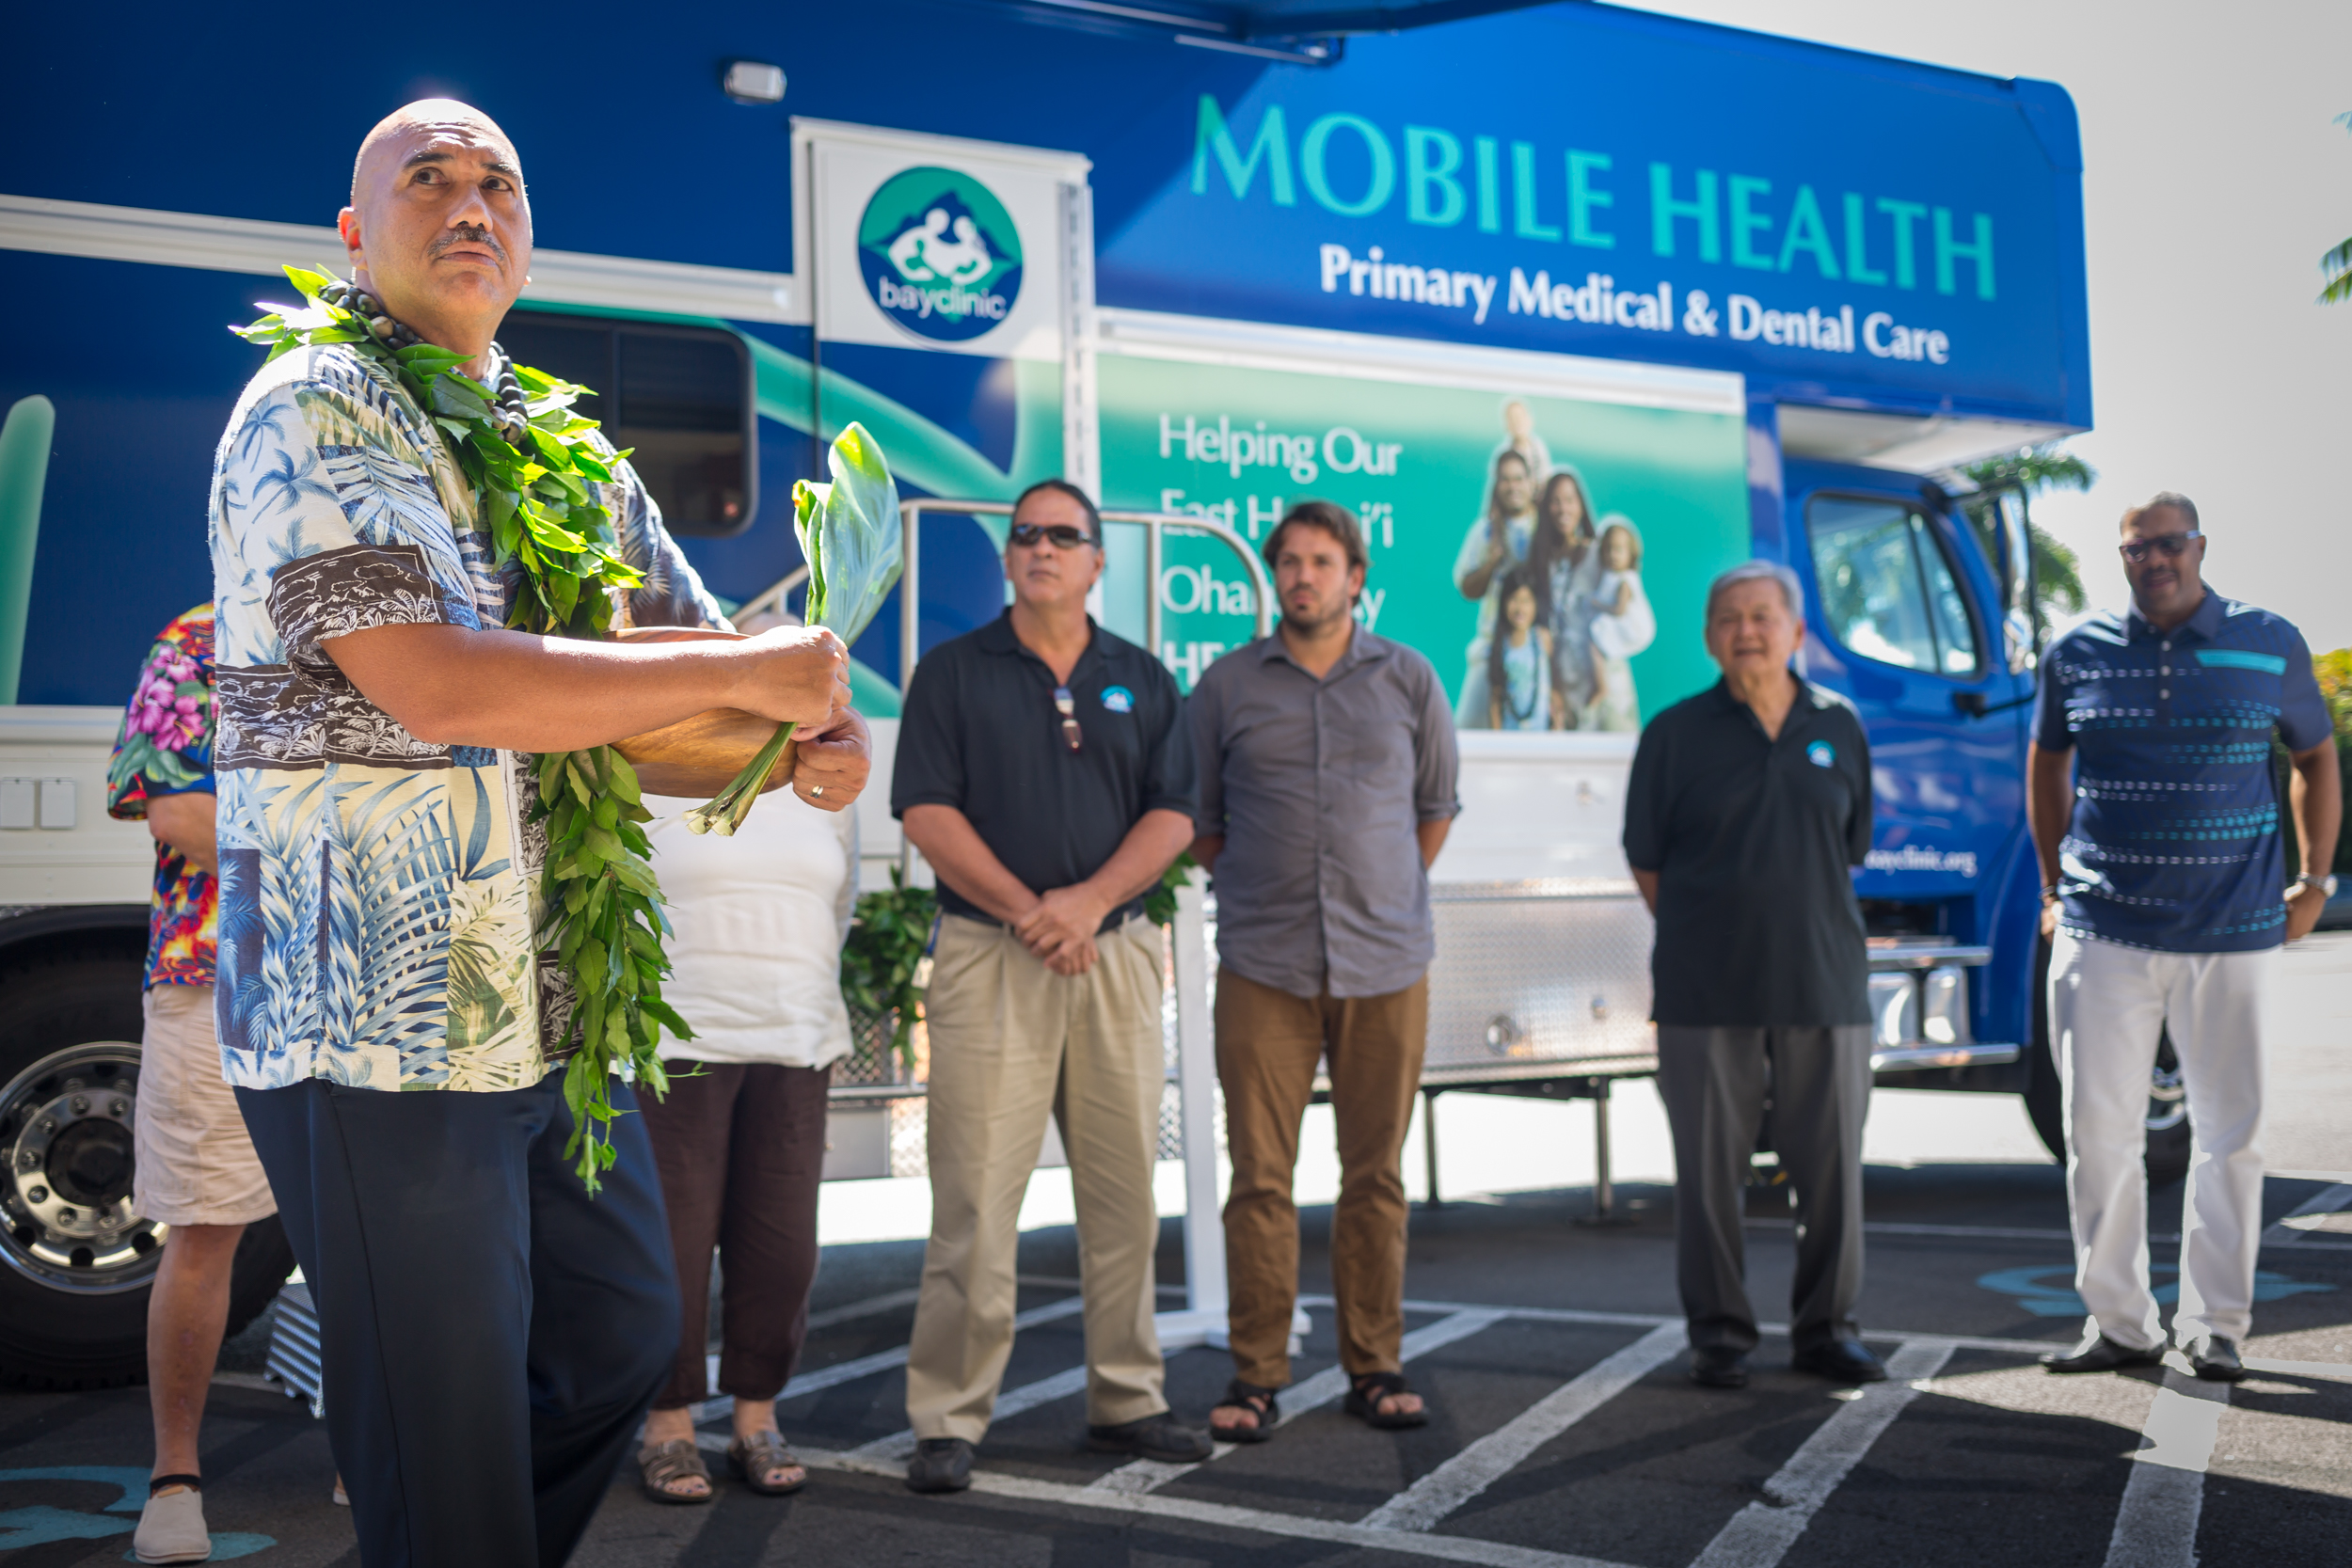 Blessing ceremony for Hawaii's first dual-use medical and dental mobile health unit.